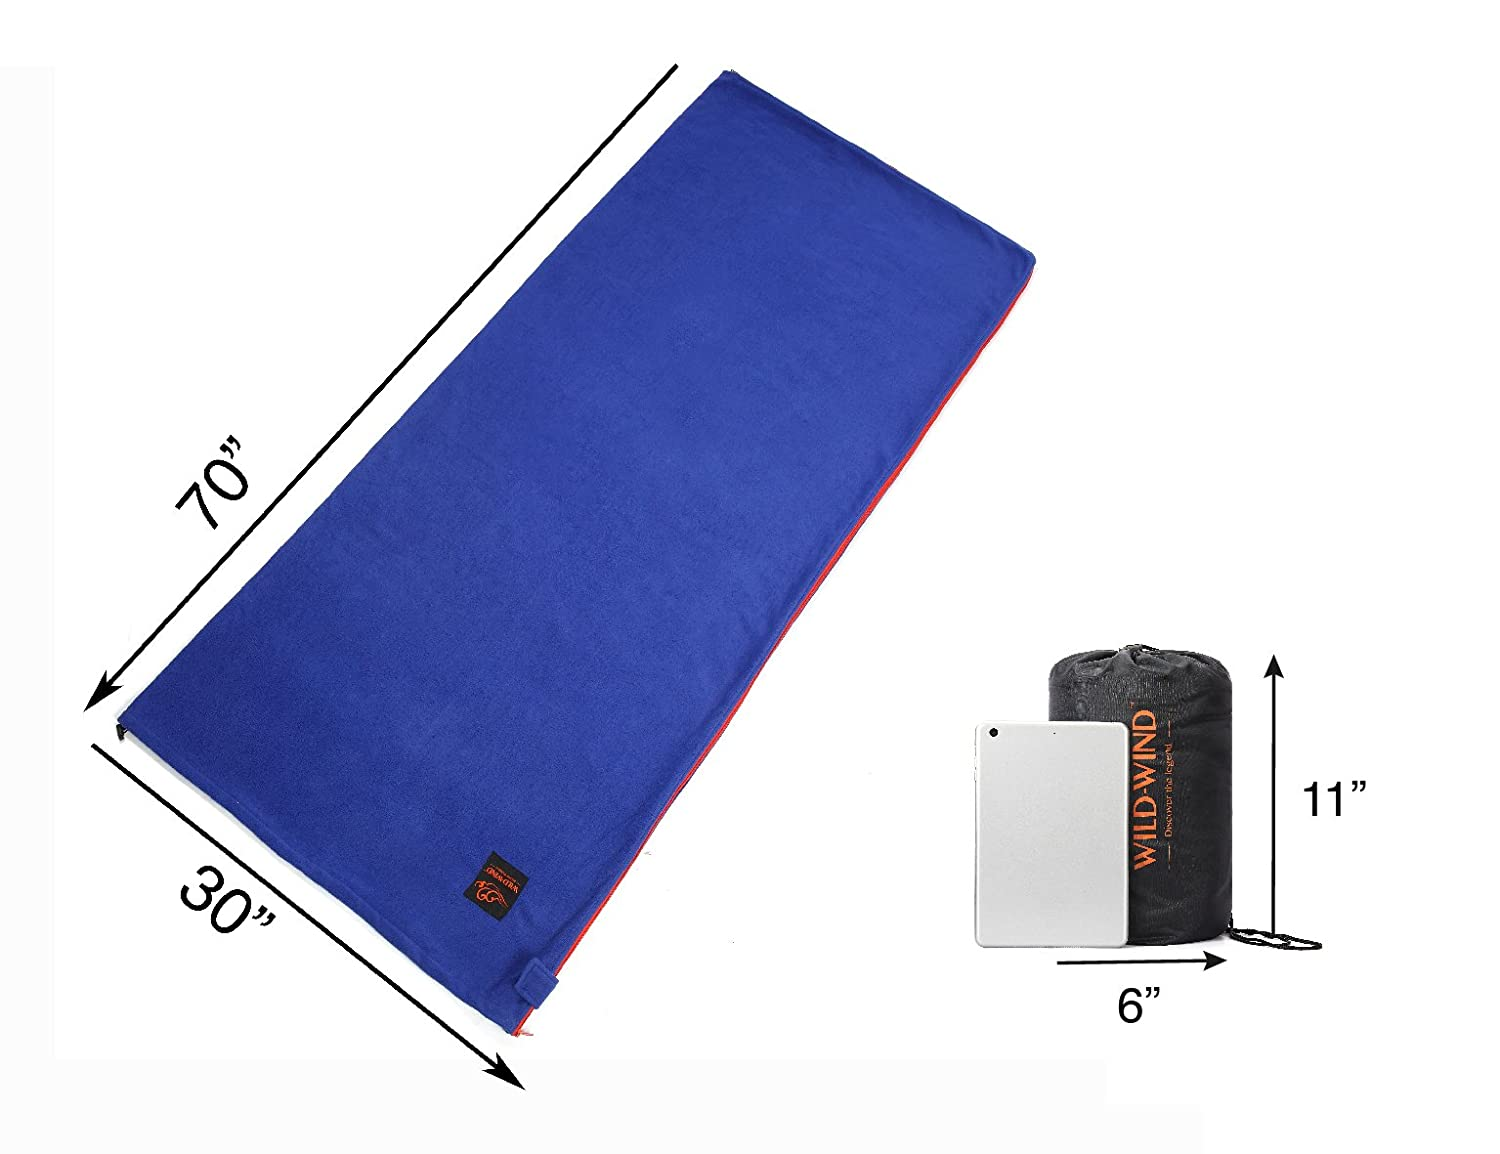 234f87d72a Amazon.com   WILD-WIND Warm Polar Fleece Zippered Sleeping Bag Liner for  Spring with Carry Storage Bag Backpacking Blanket (Blue)   Sports   Outdoors